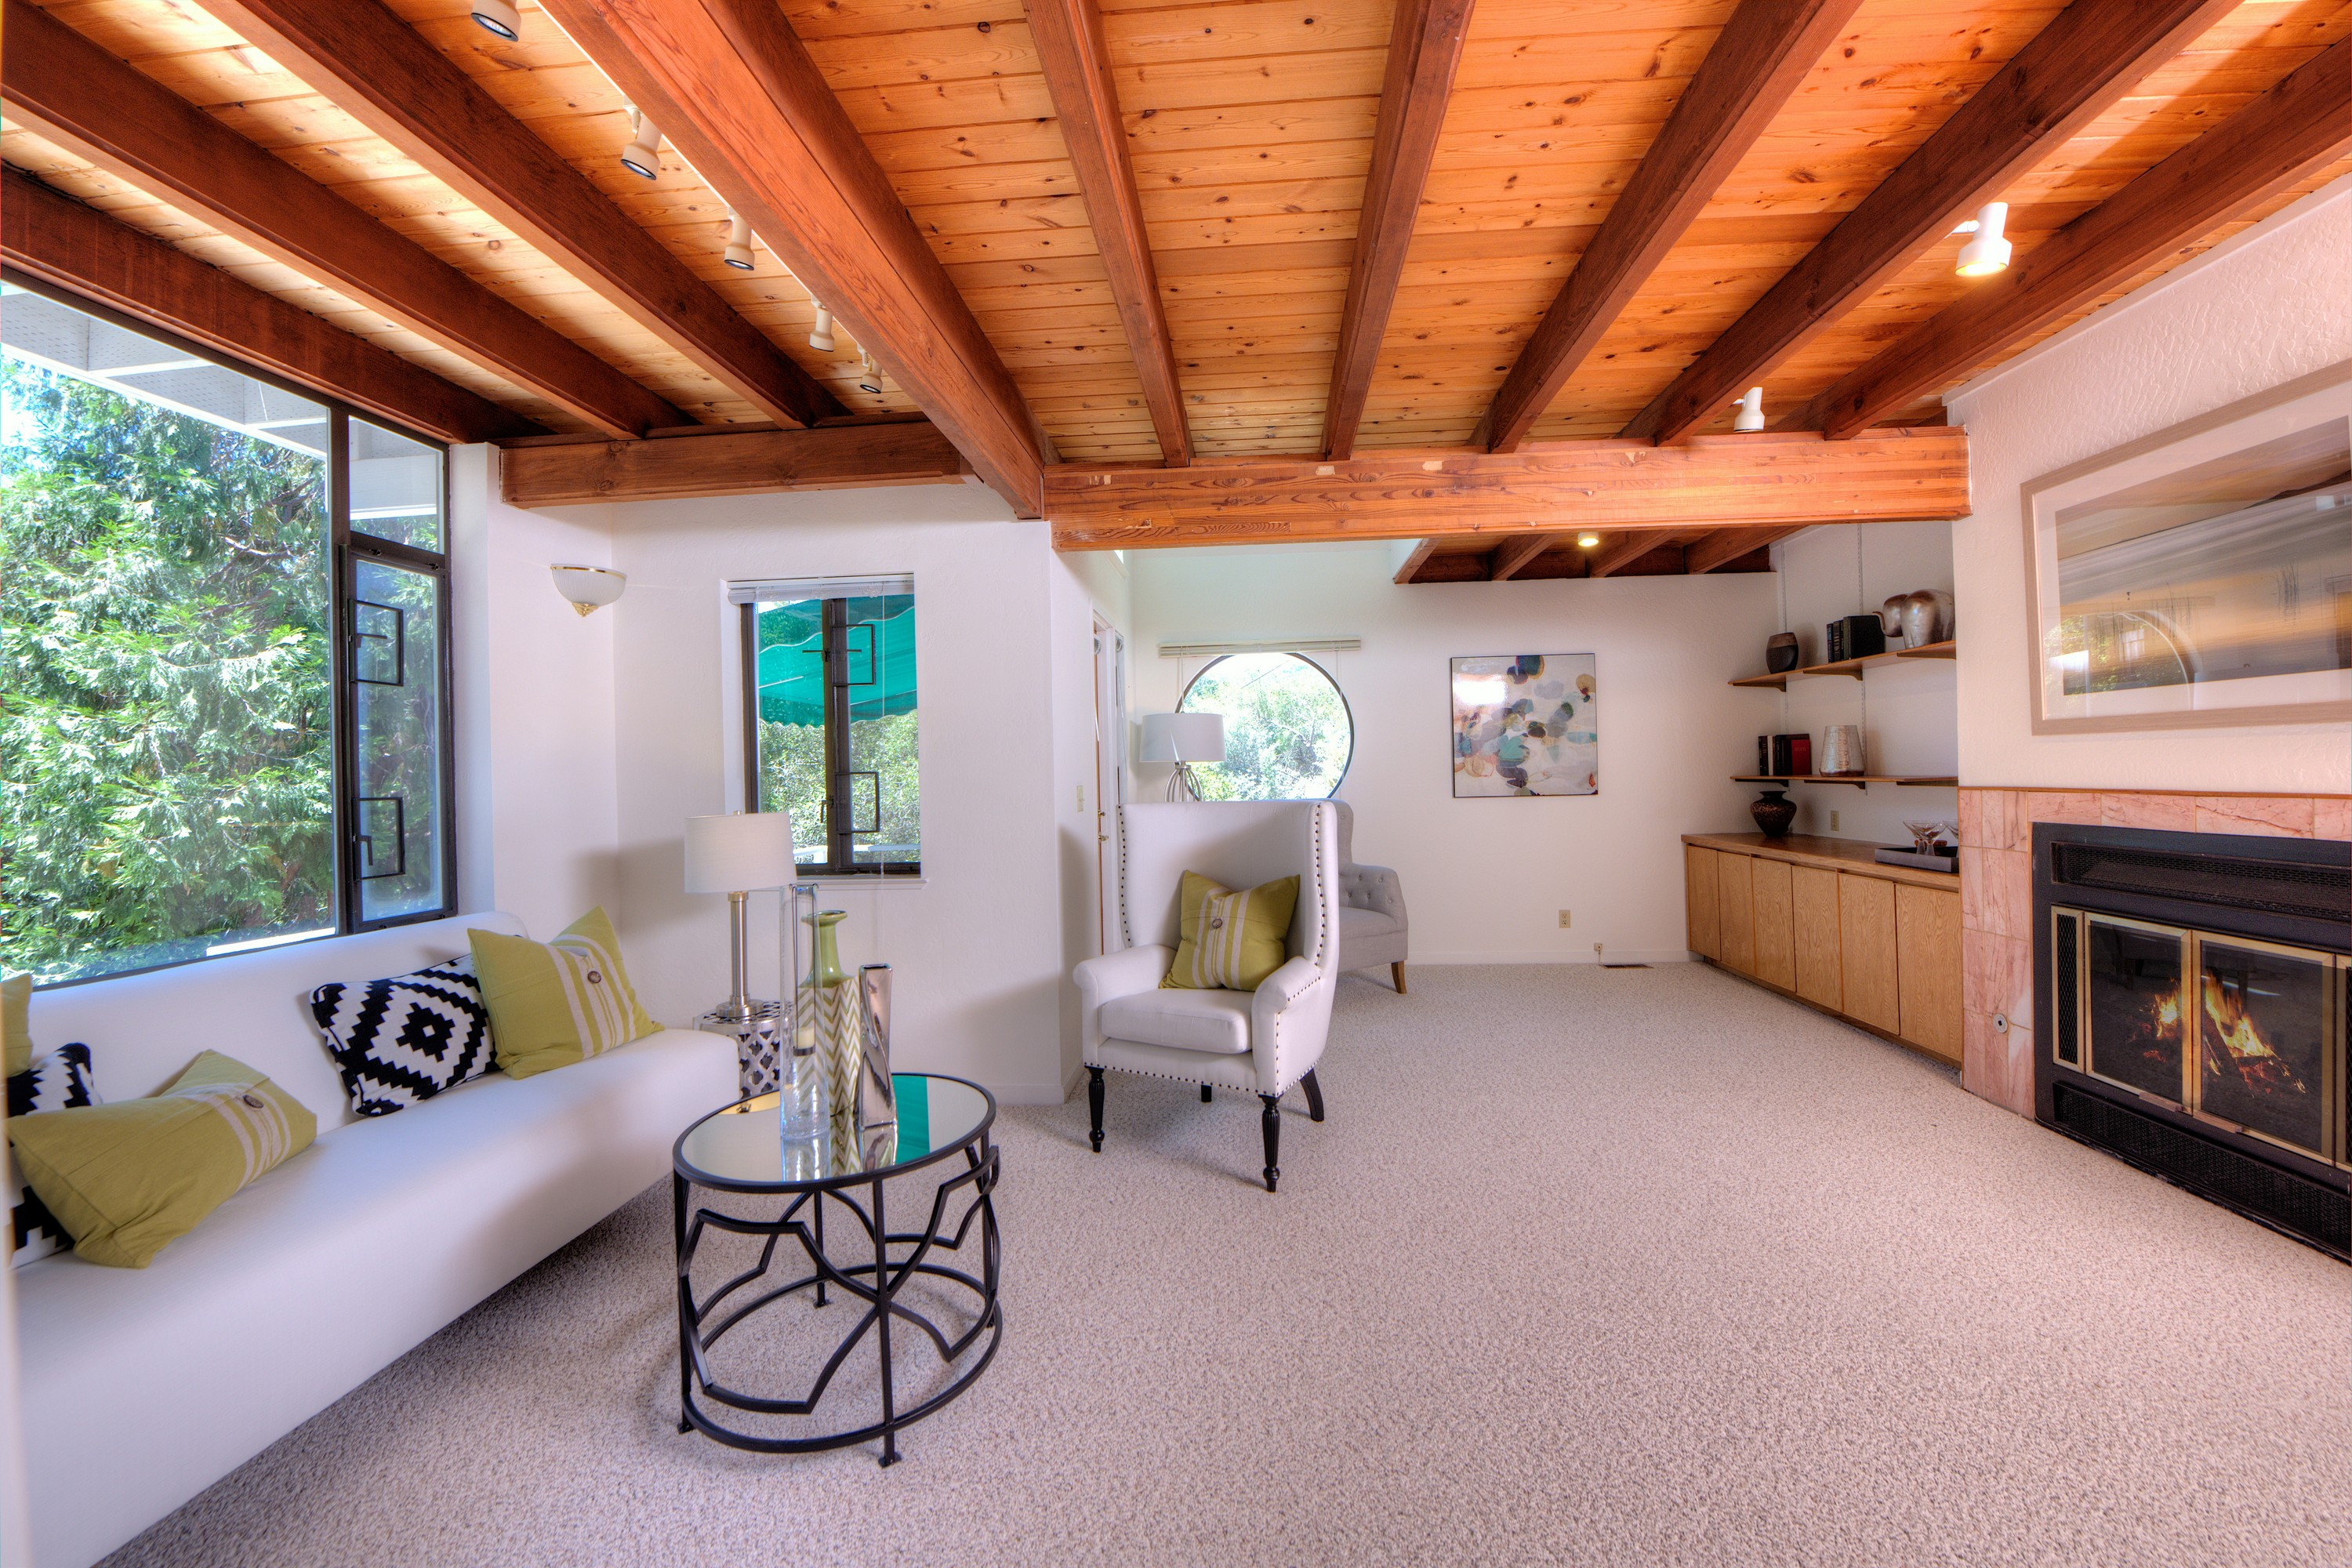 Single Family Home for Sale at Ideally Located Contemporary Cottage 6 Berry Lane Ross, California 94960 United States